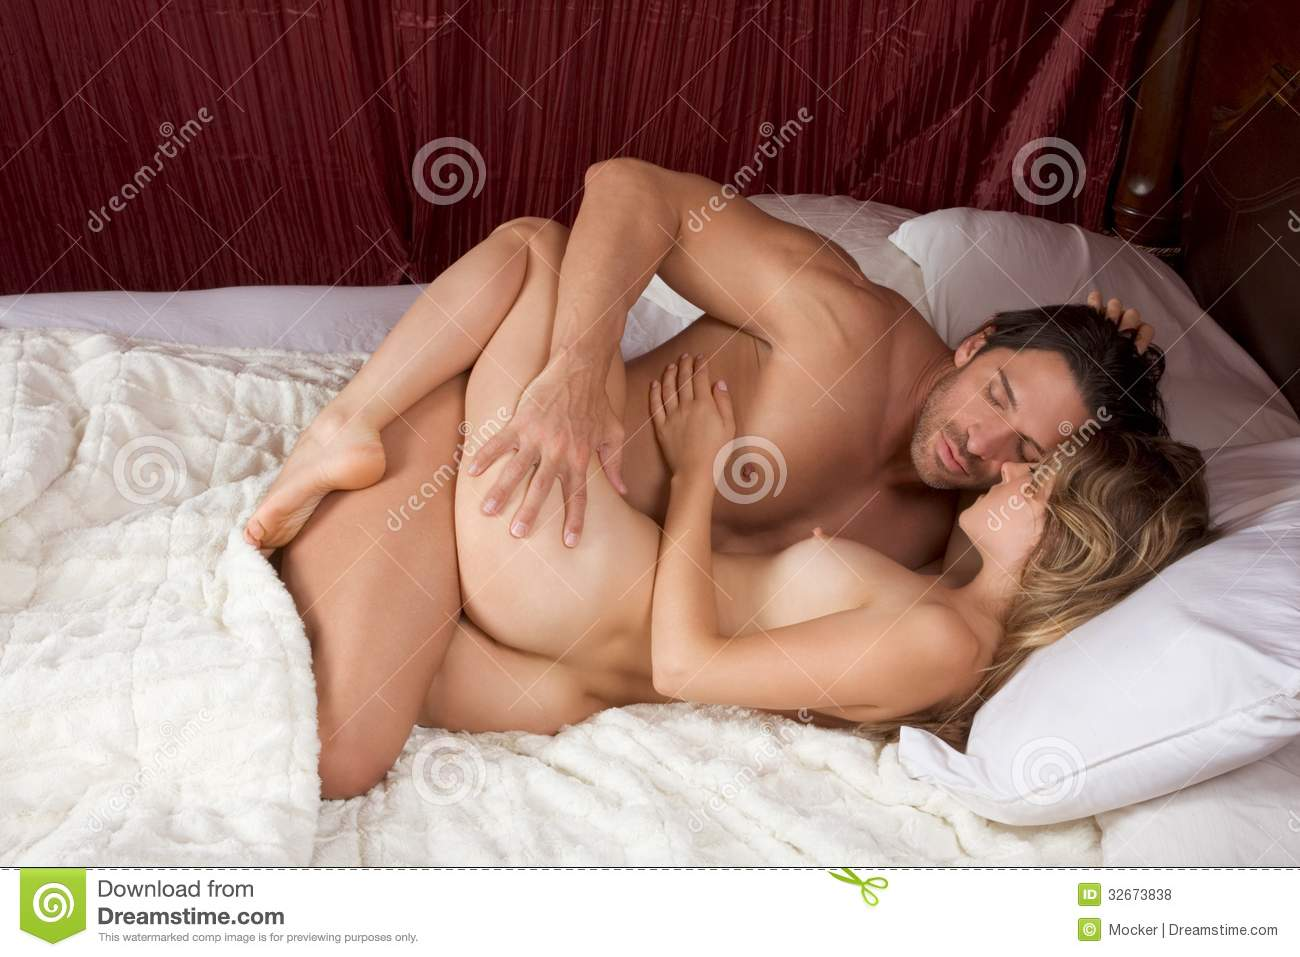 Pictures of couples making love